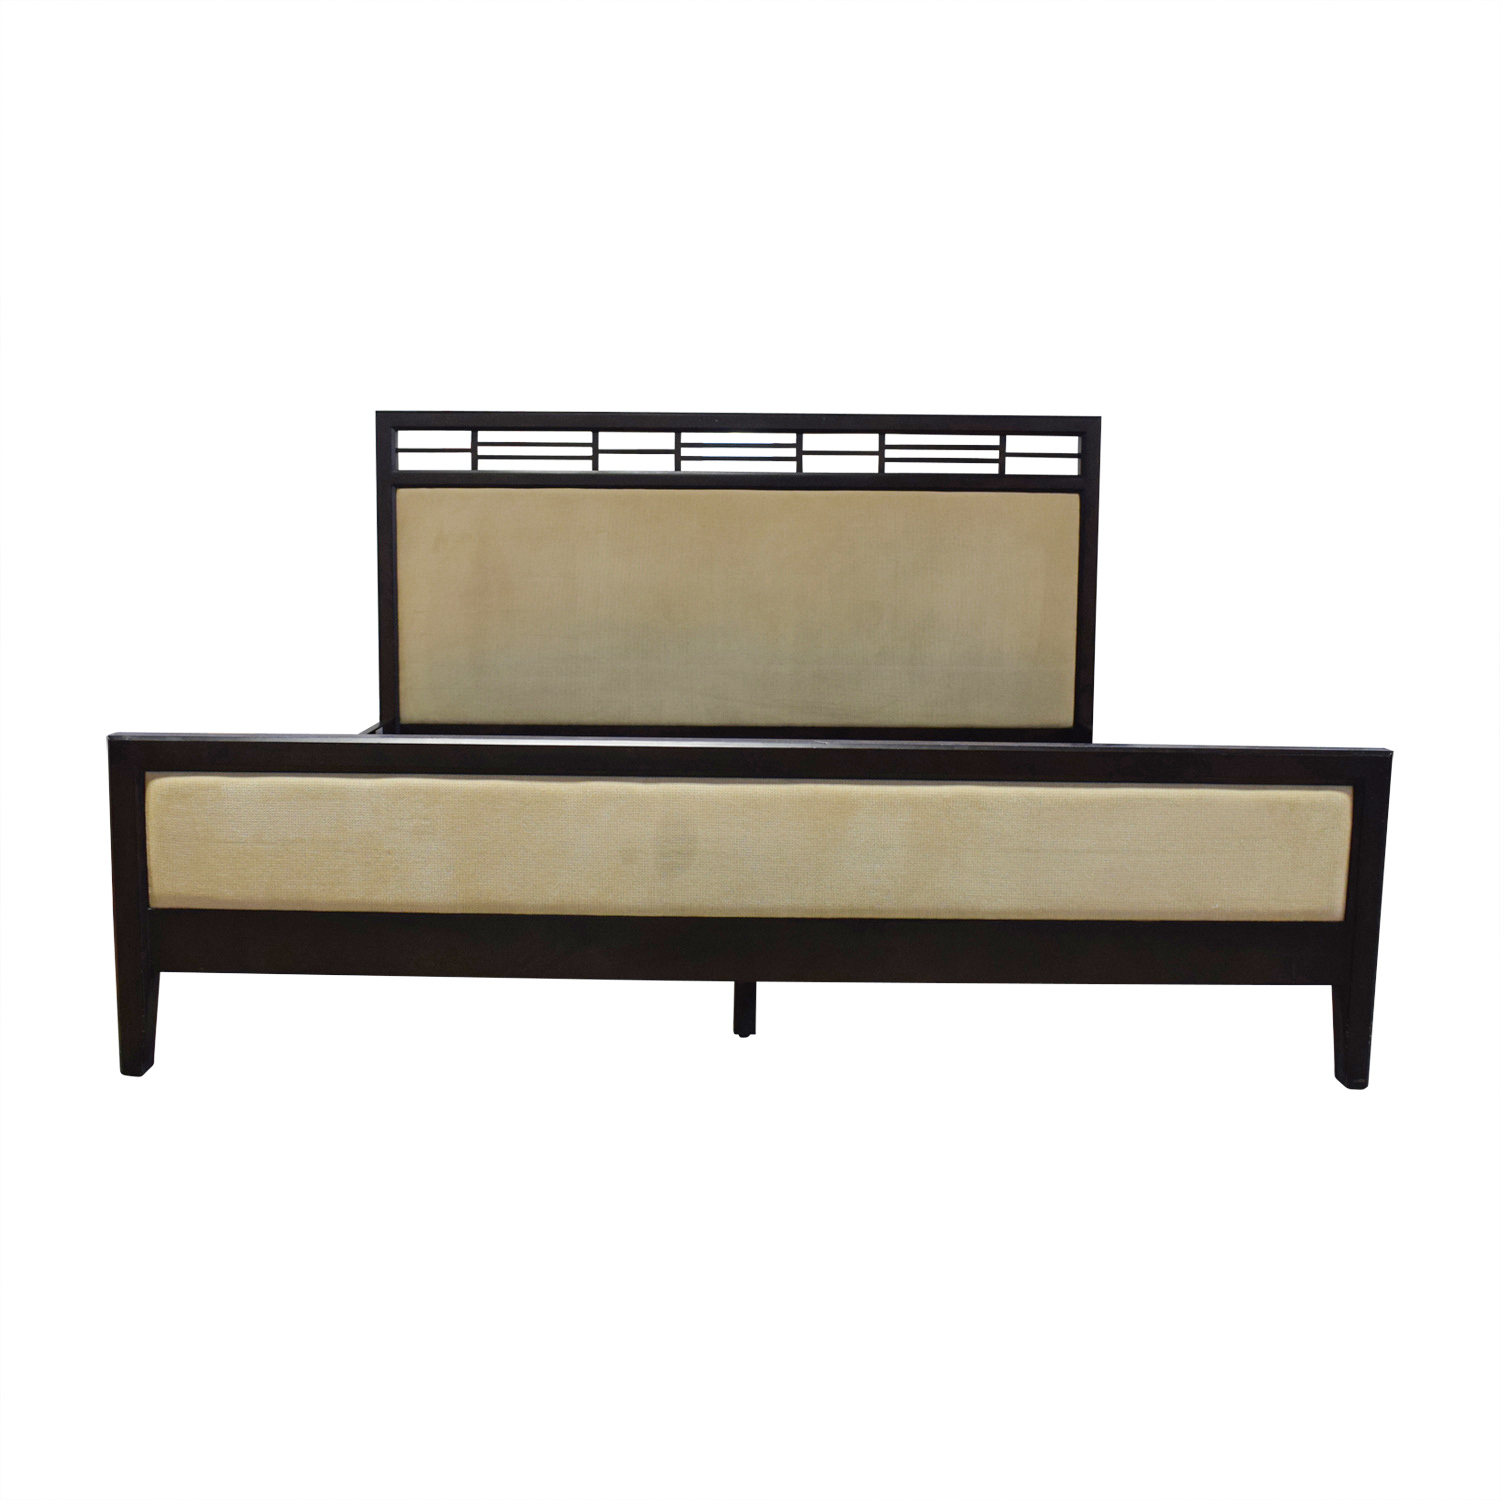 Crate & Barrel Crate & Barrel Beige Upholstered Black King Bed Frame discount